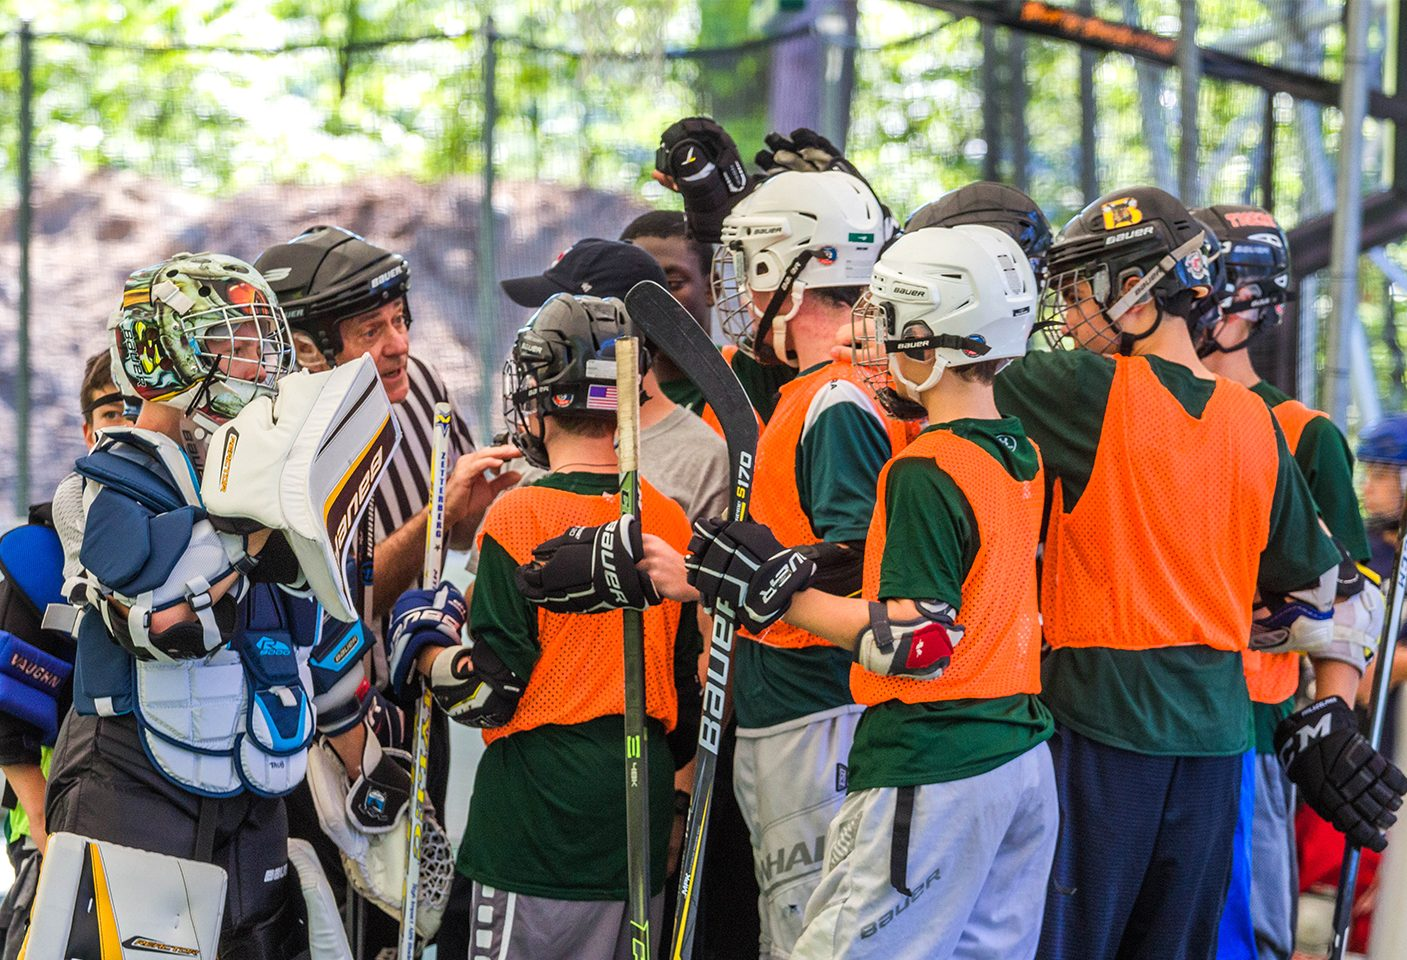 Hockey camp competition